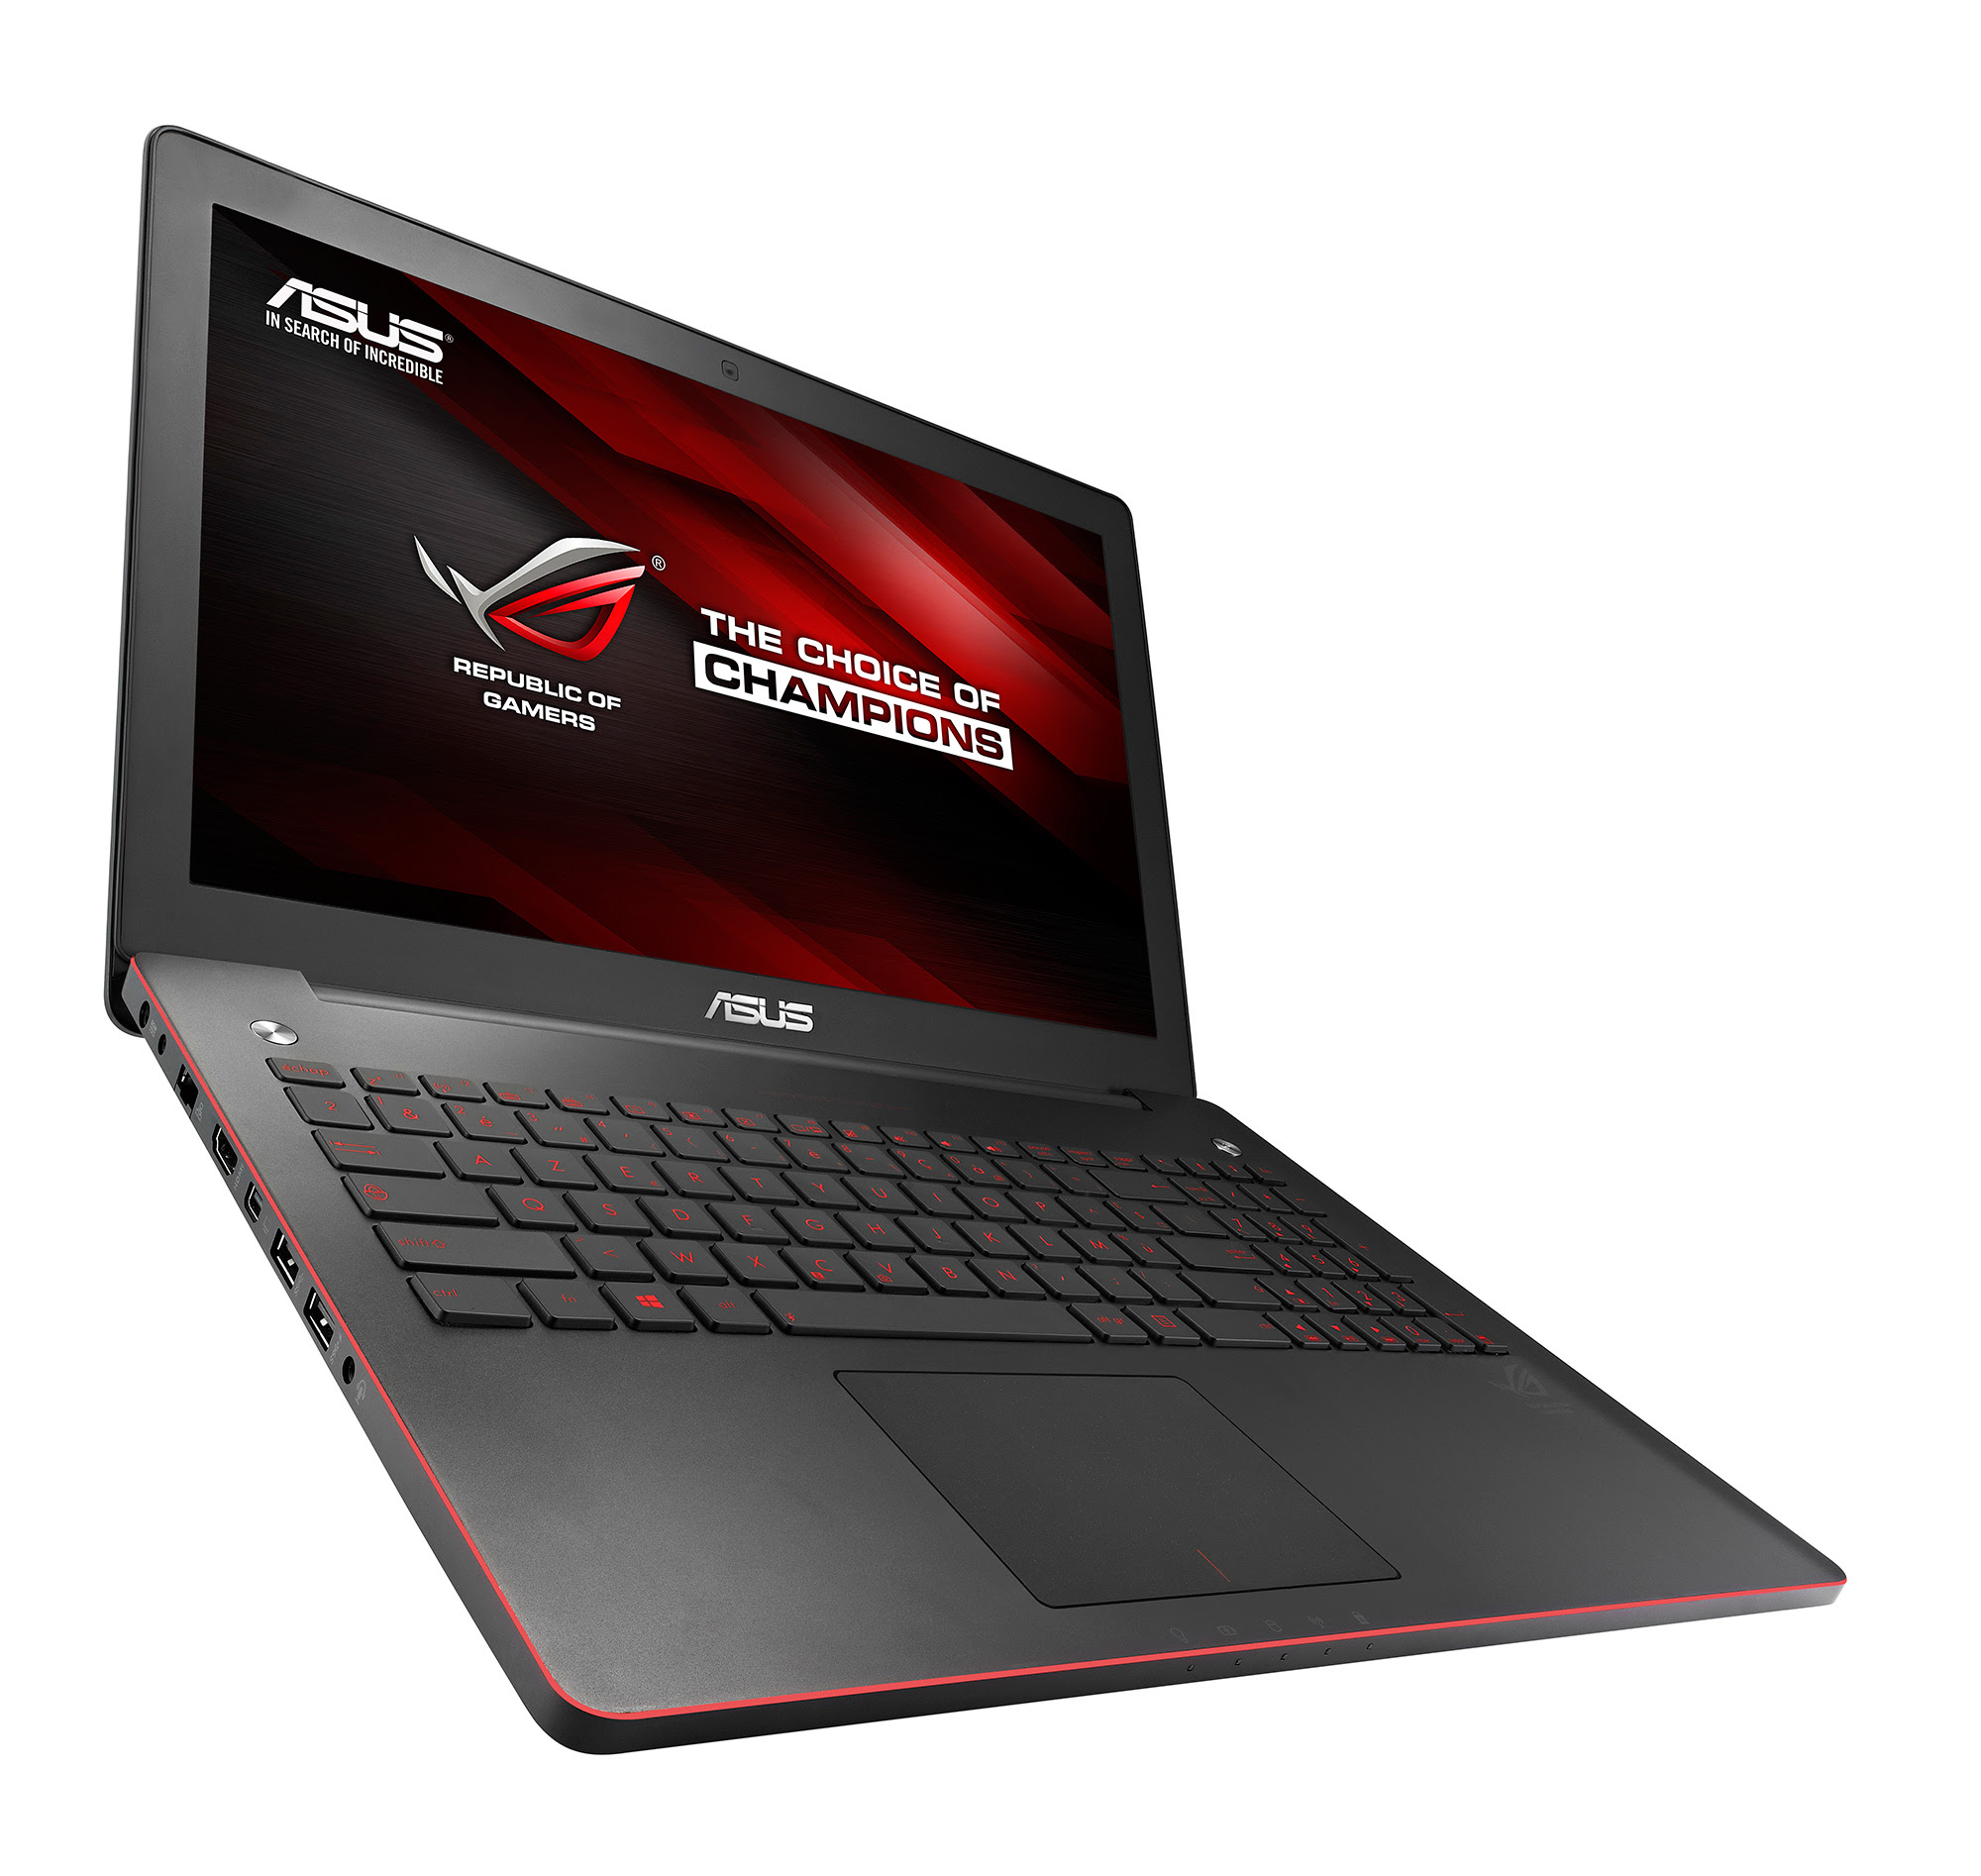 ASUS Republic of Gamers Announces Stunning G550JK Gaming Notebook